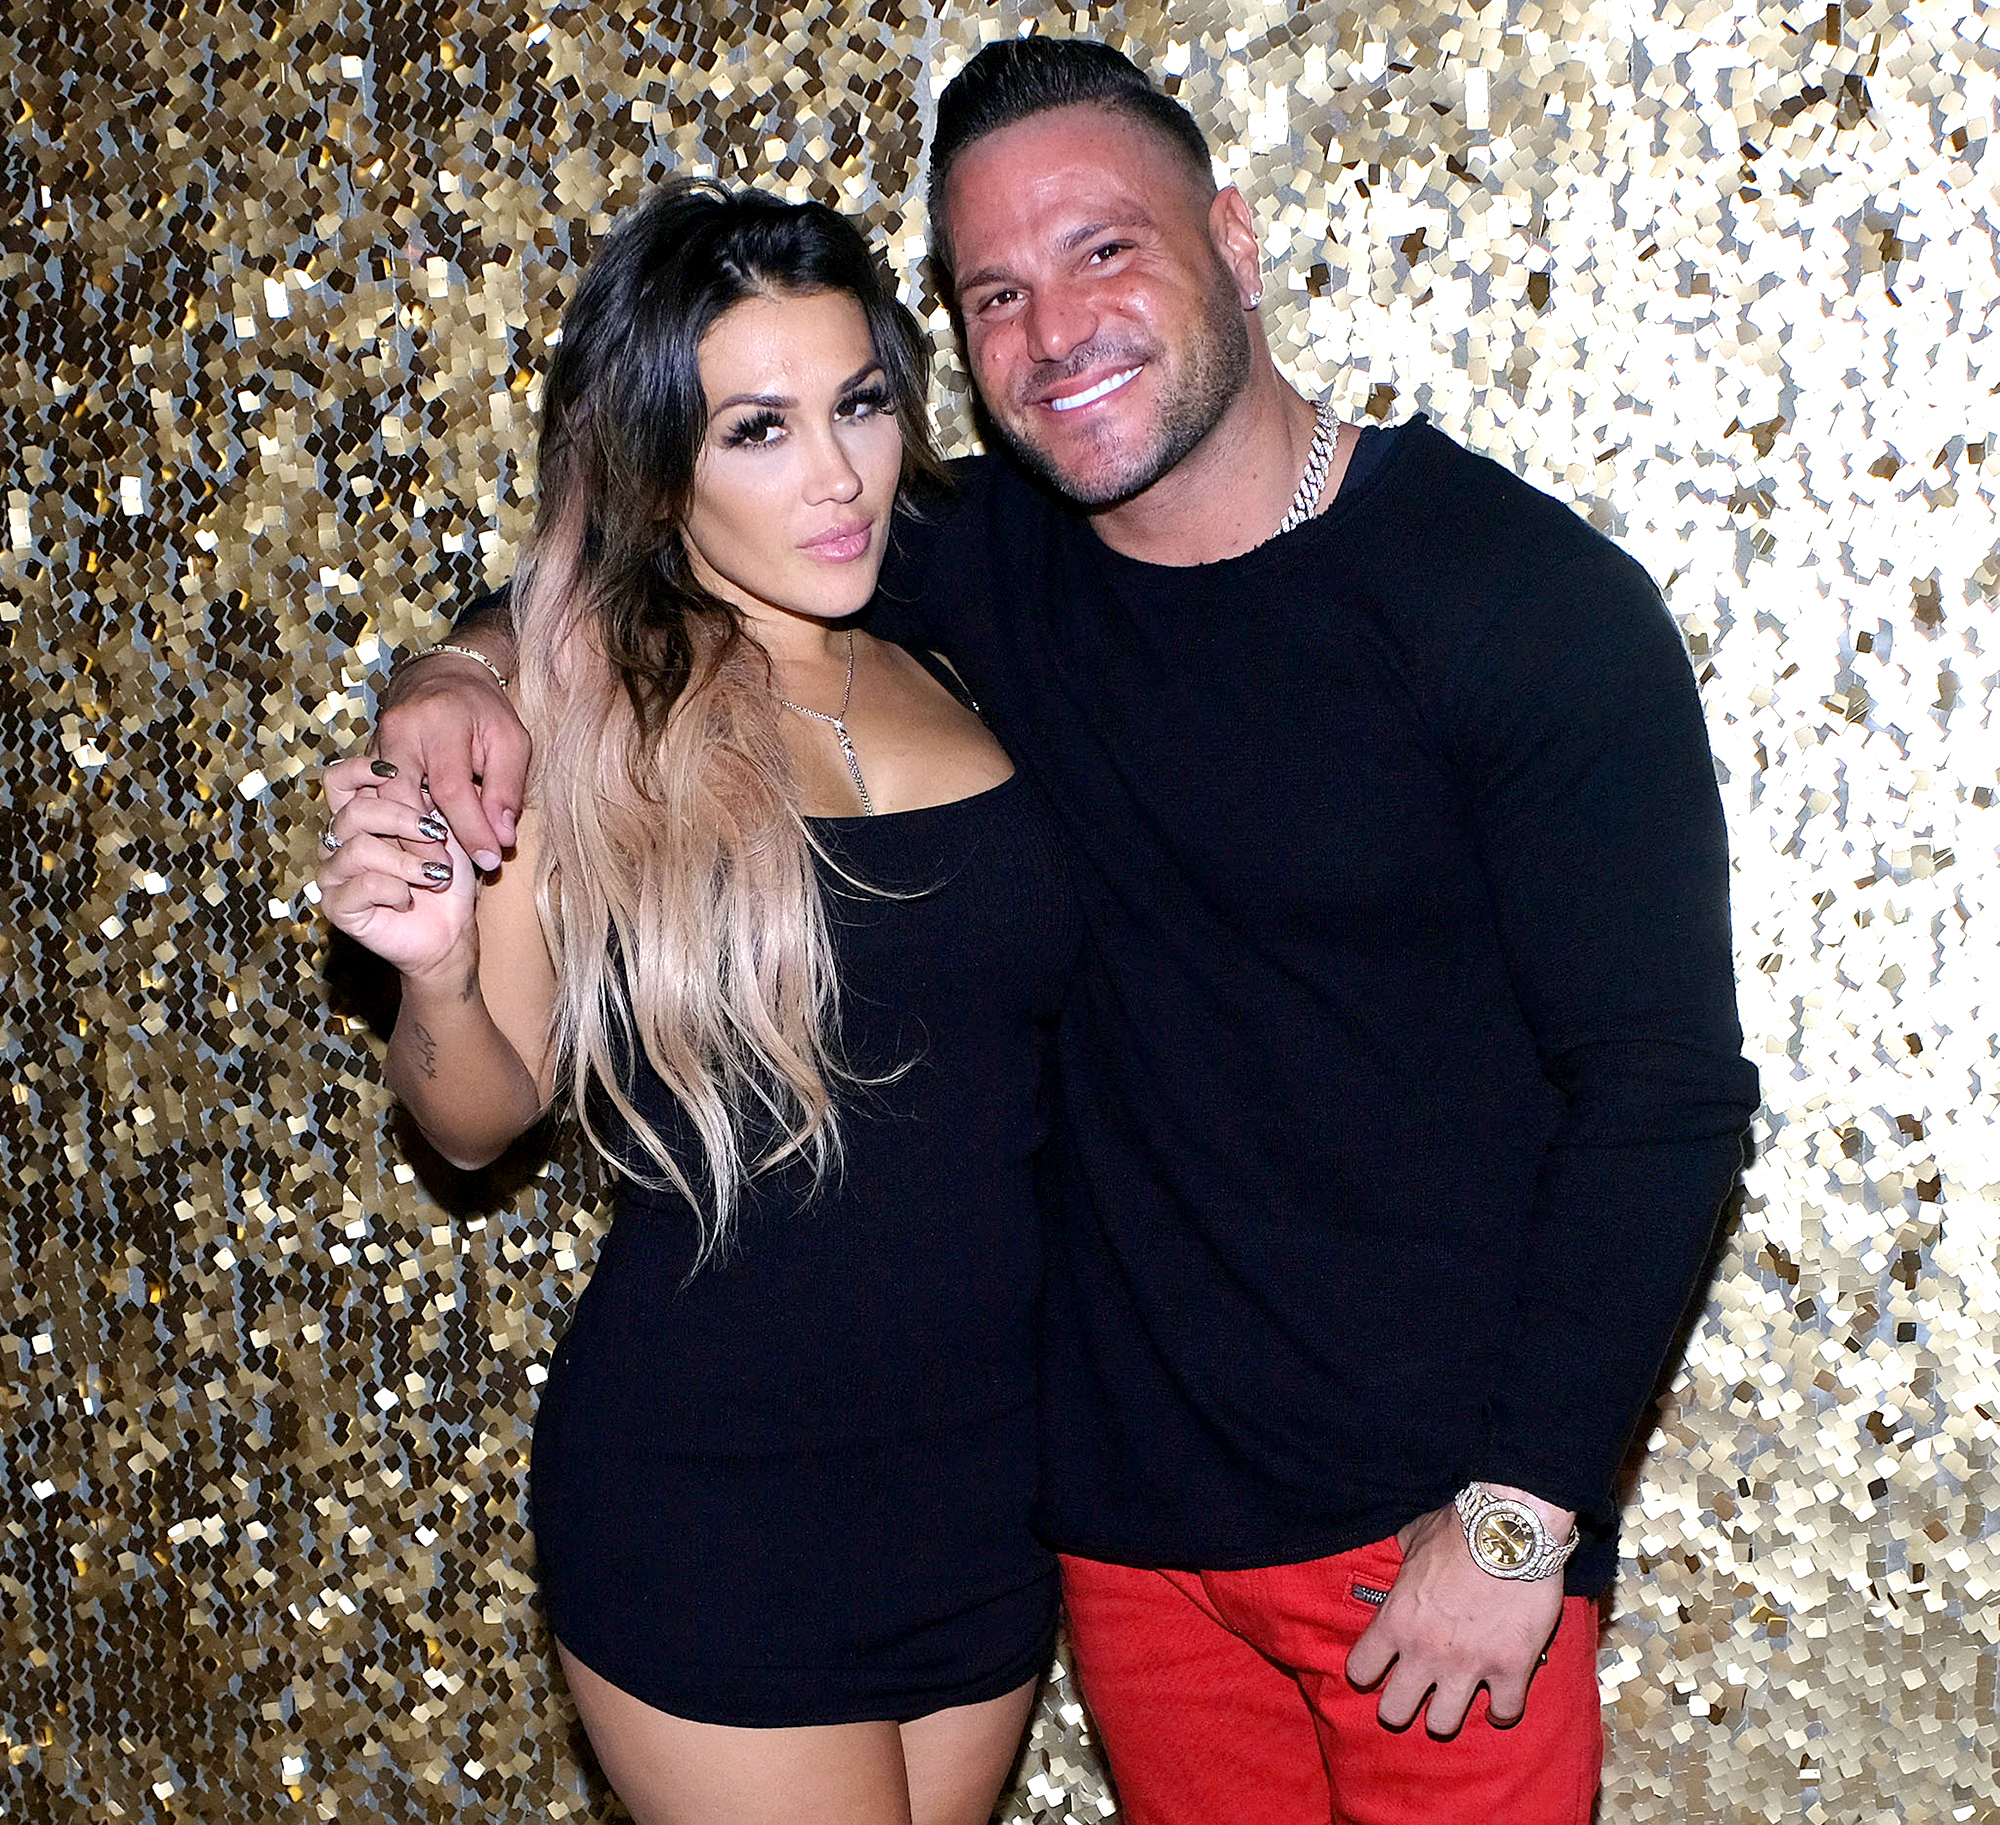 Ronnie Ortiz-Magro Receives Plea Deal in Domestic Violence Case Against Ex Jen Harley